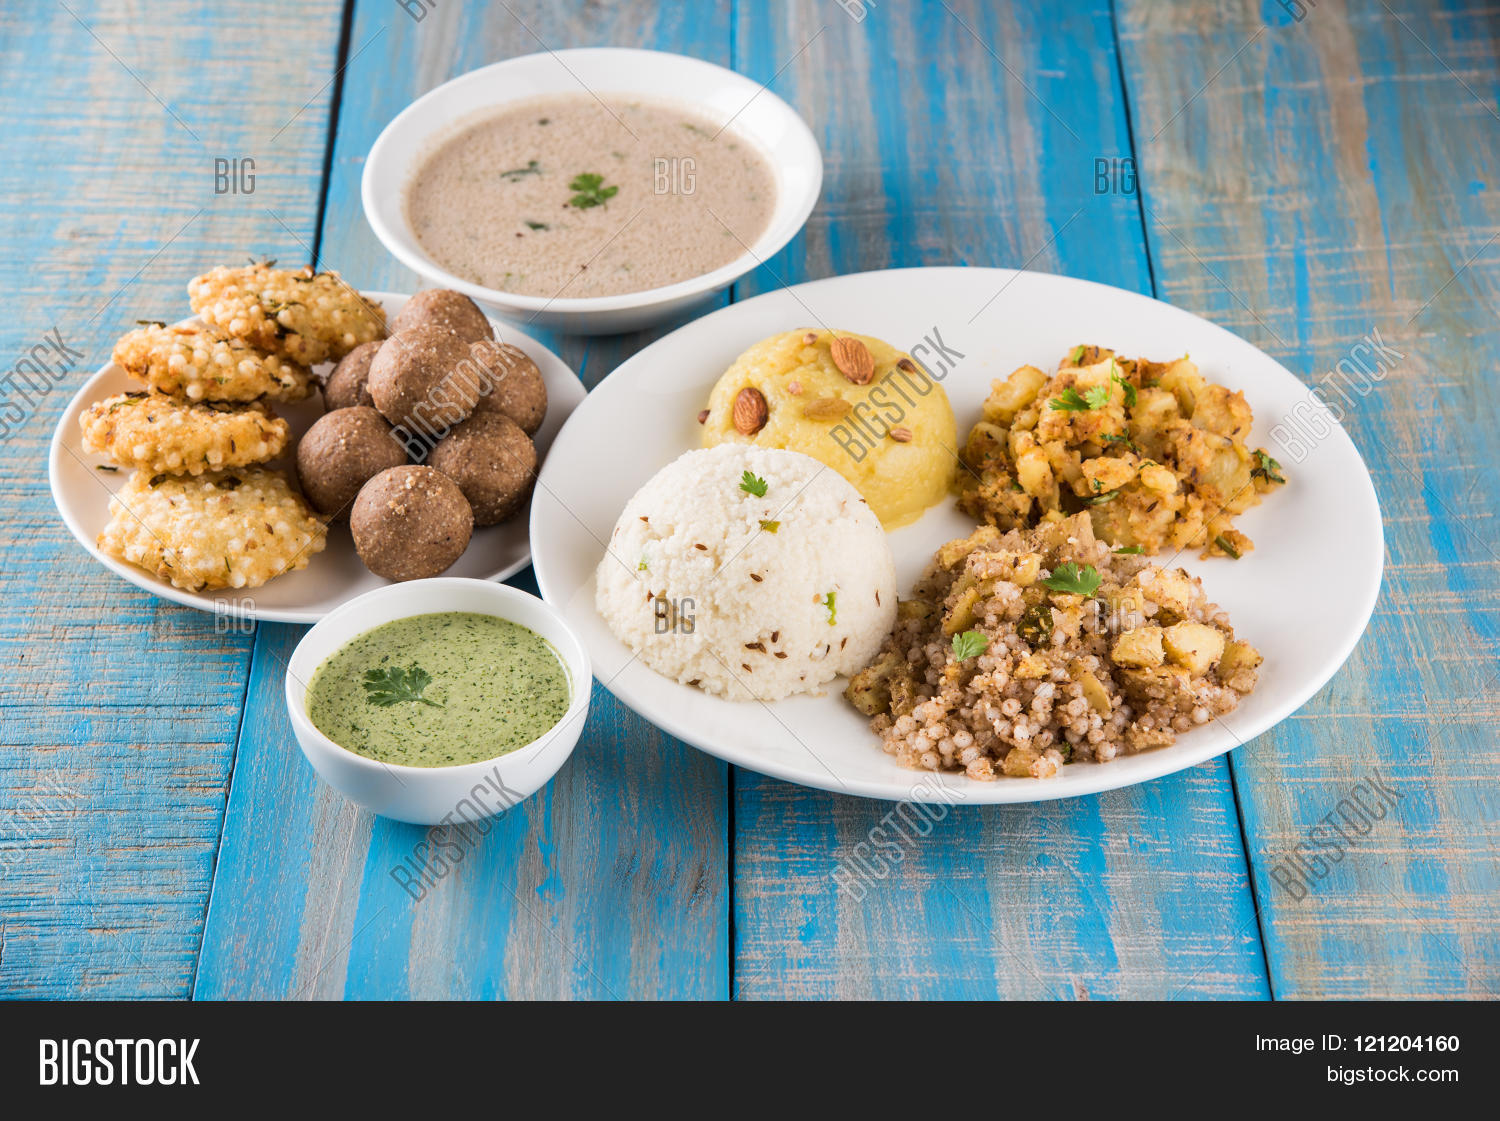 Indian fasting recipes image photo free trial bigstock indian fasting recipes or upwas food for mahashivratri navratri forumfinder Gallery